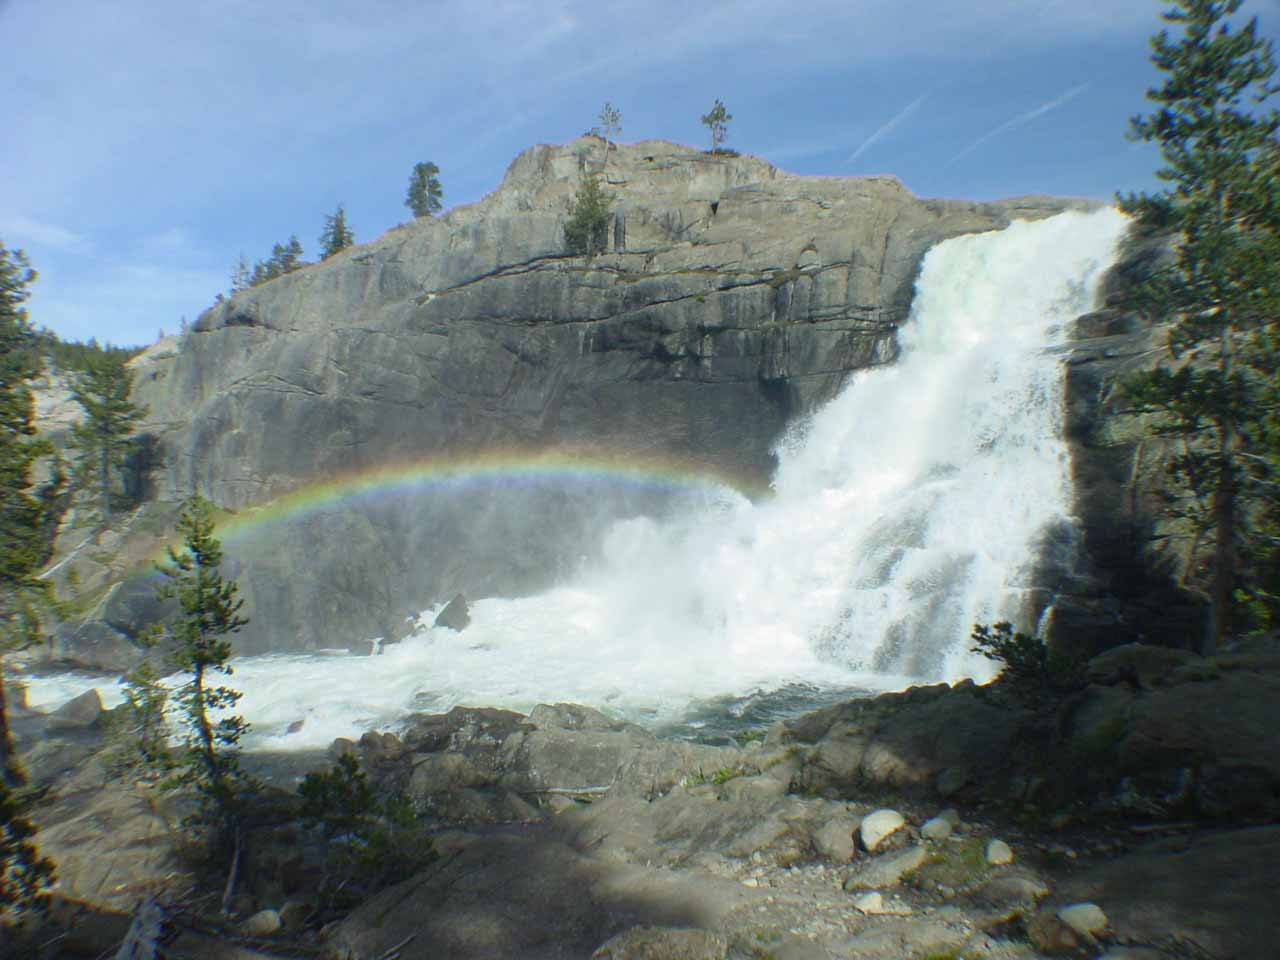 Another look at Tuolumne Falls and rainbow